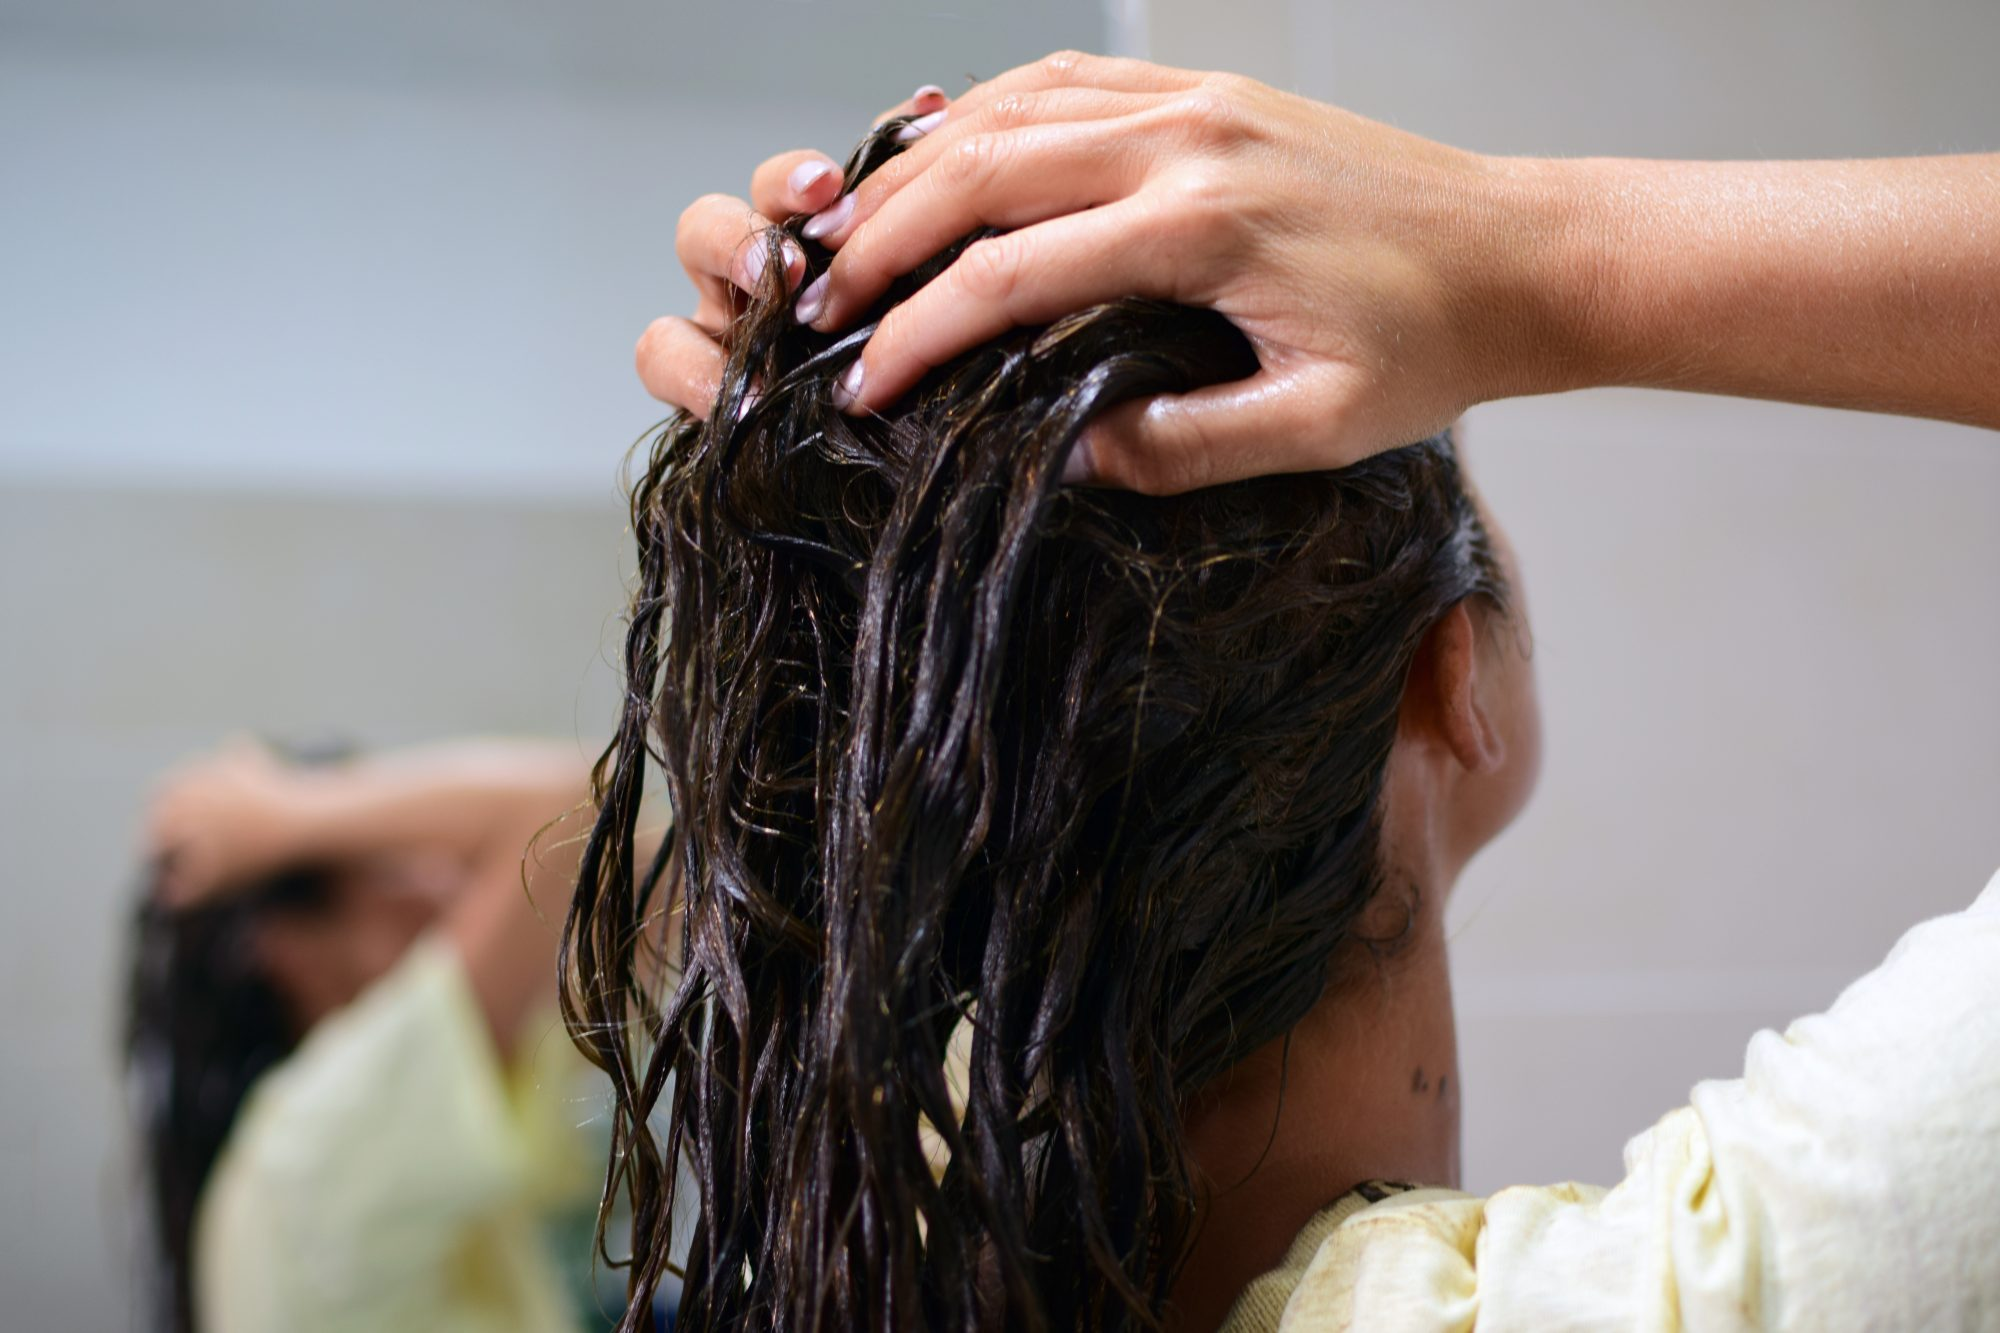 You may love the effects of professional hair treatments (shiny, healthy hair is always in style). But it can be such a hassle to get to the salon—or it can end up costing you a fortune in fancy products. Instead, try these easy at-home fixes from your pantry.More from PureWow: 22 Tips for Really Pretty Nails